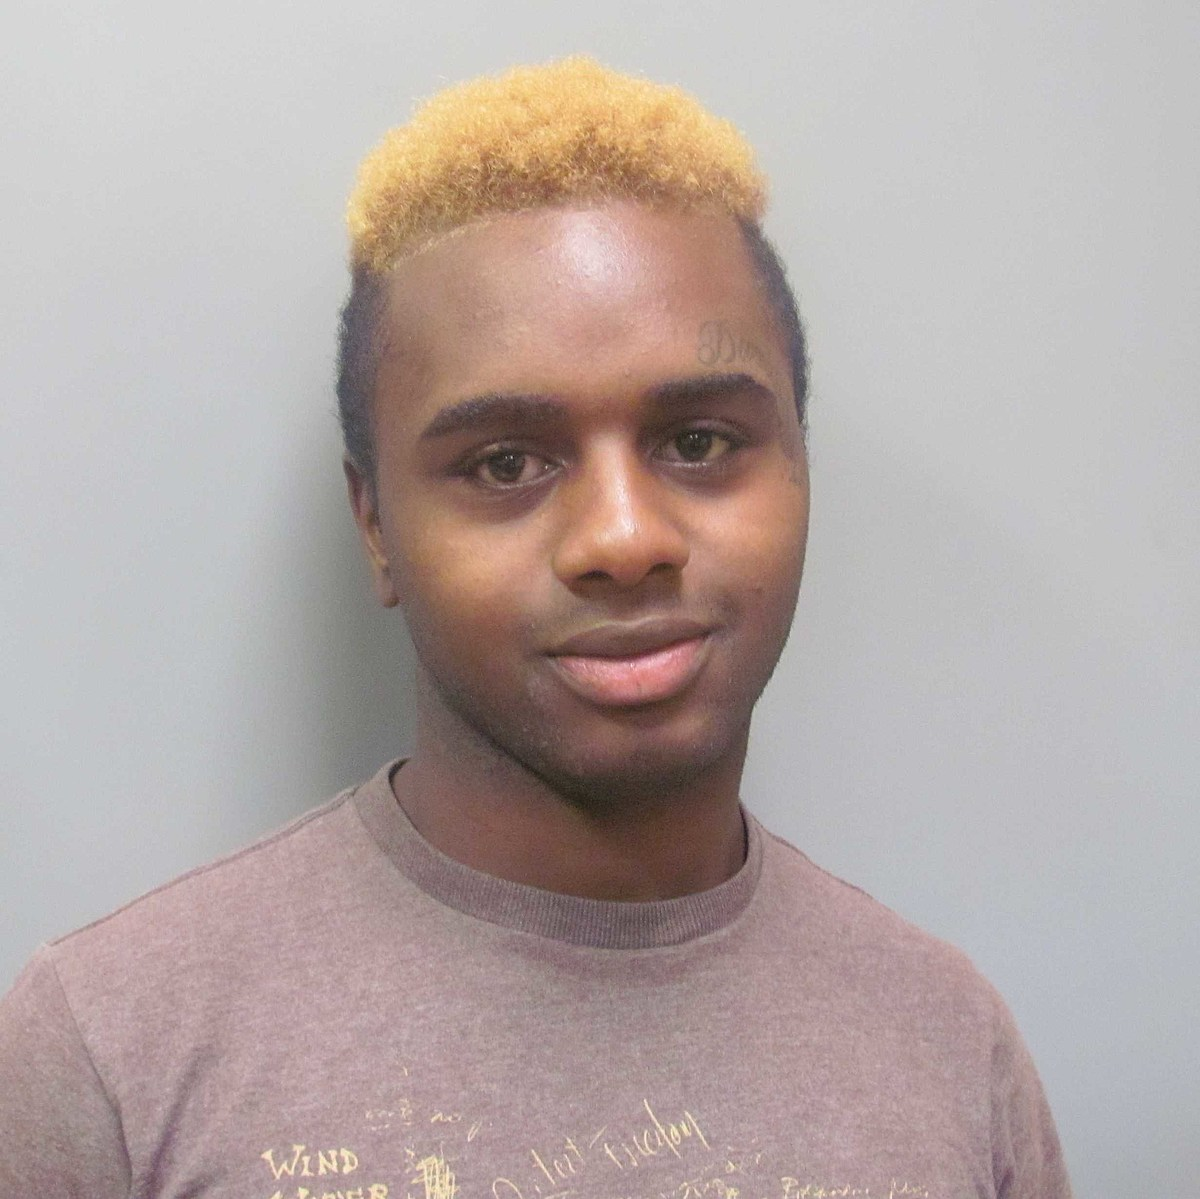 non-compliant sex offender in alabama law in Mobile